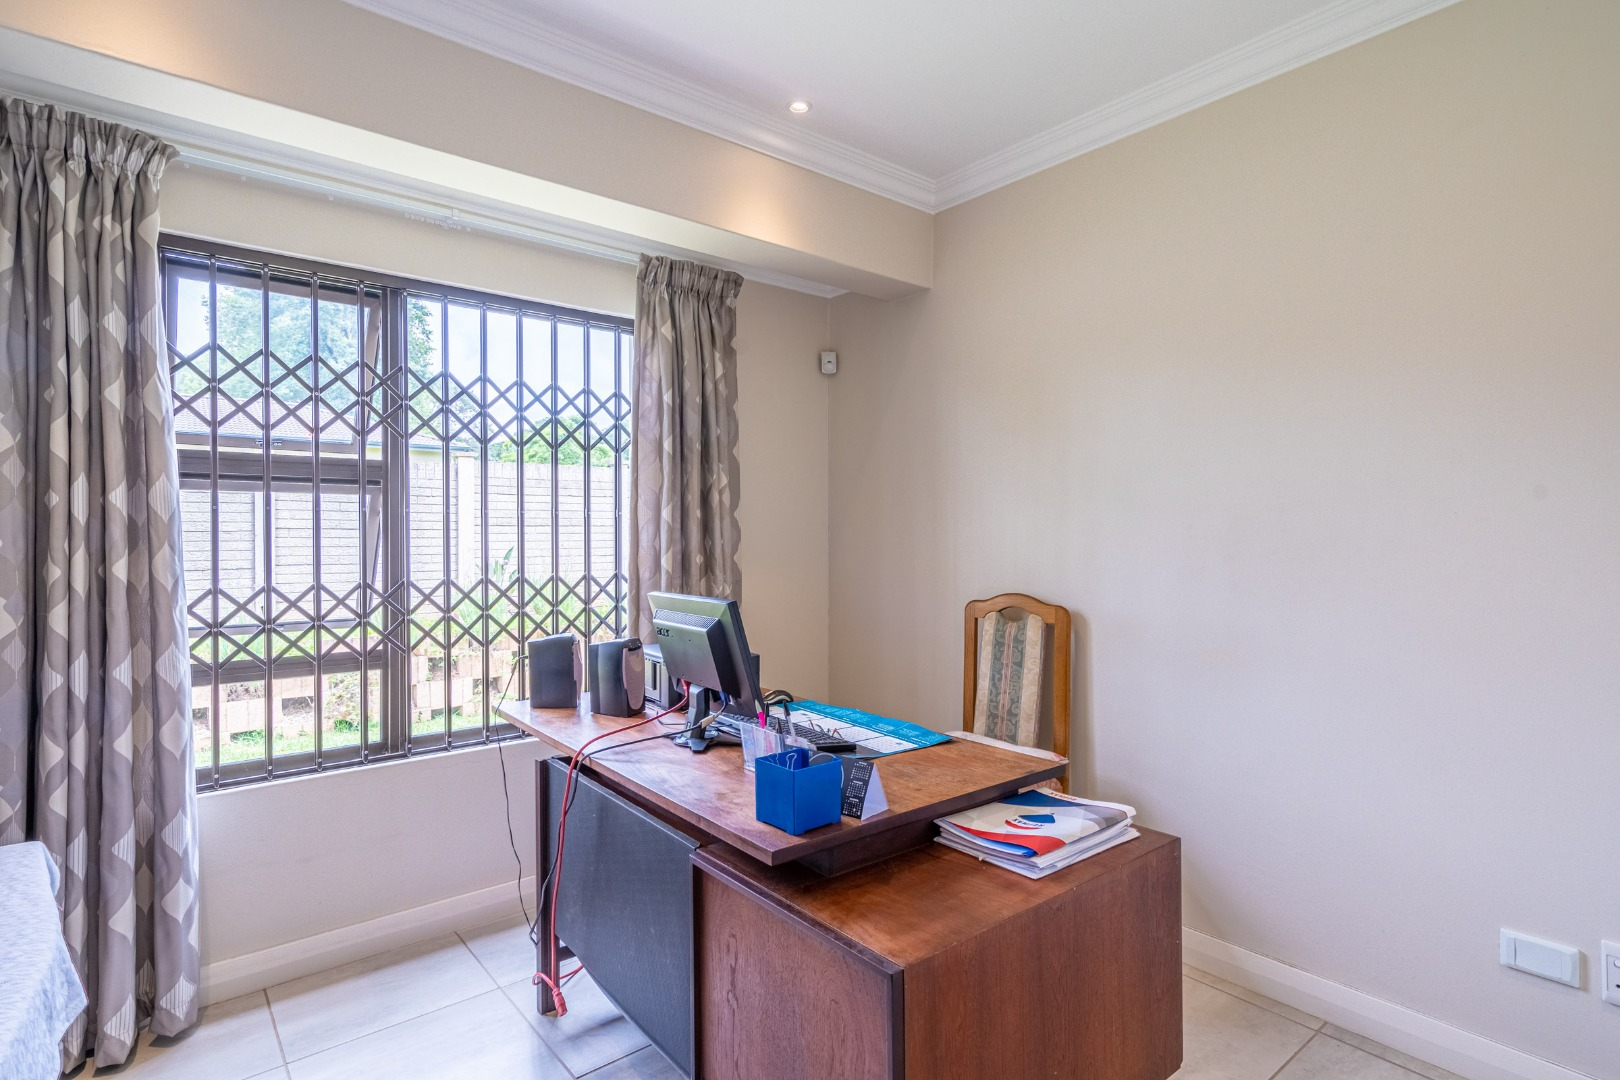 3 Bedroom House For Sale in Winston Park